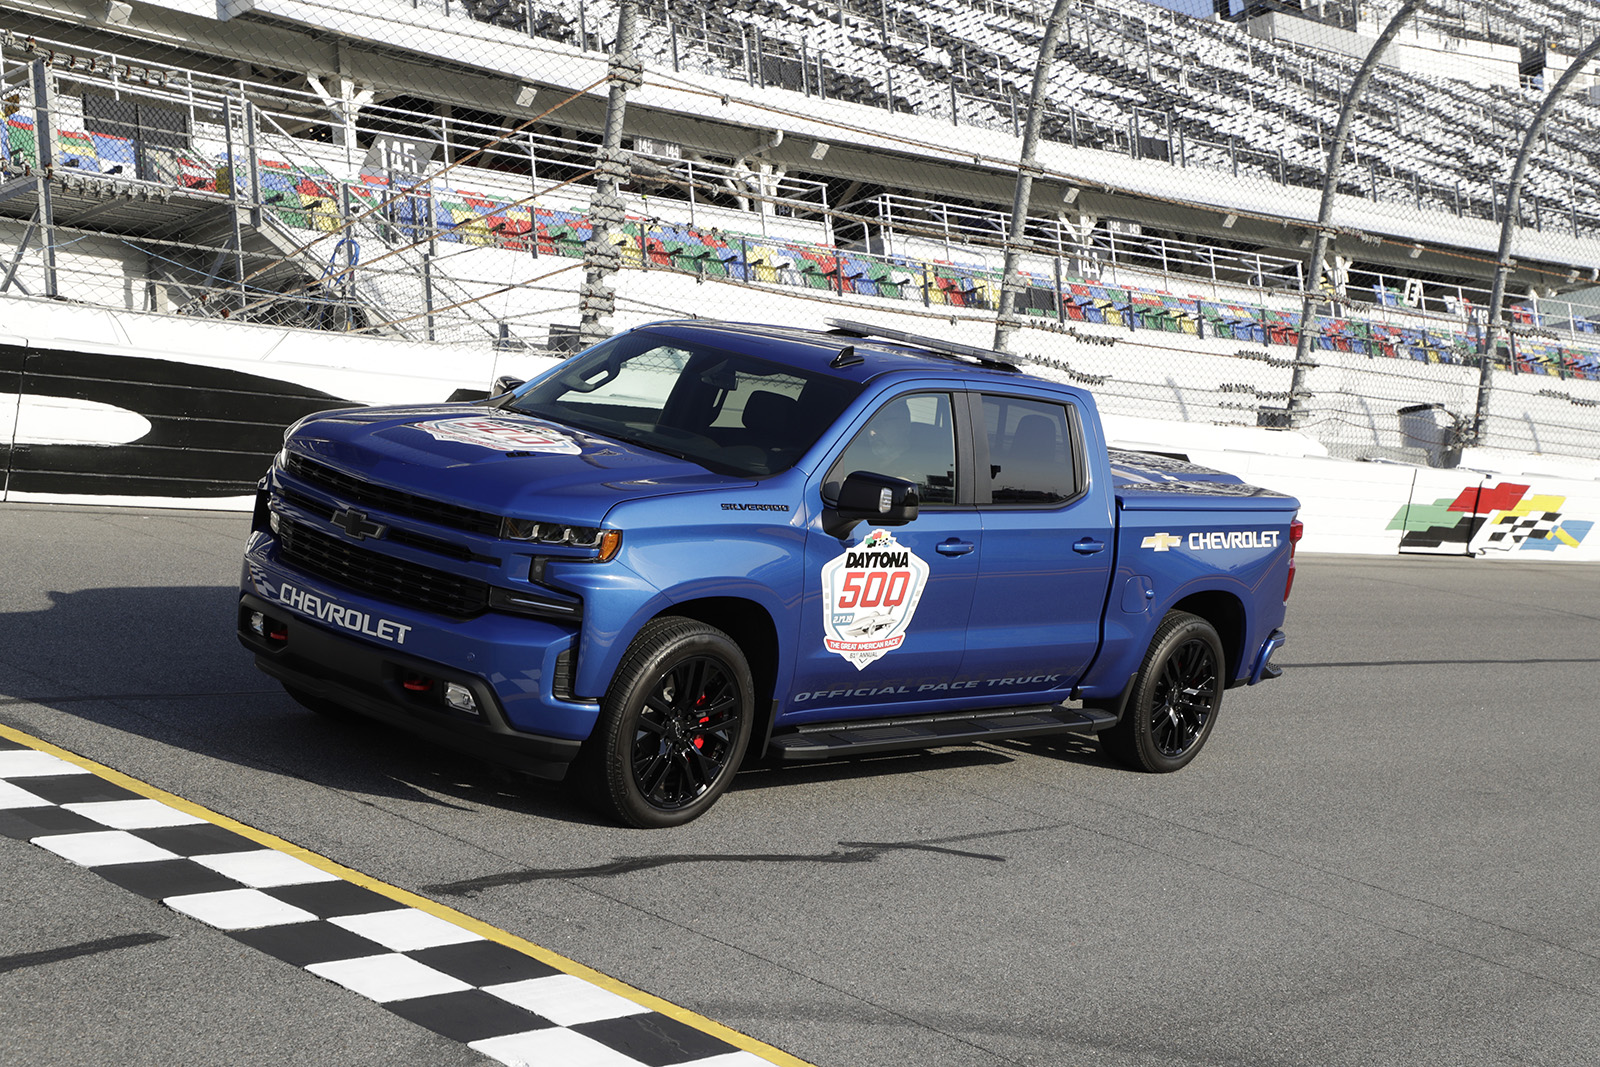 Silverado makes history as the first-ever truck to pace Daytona